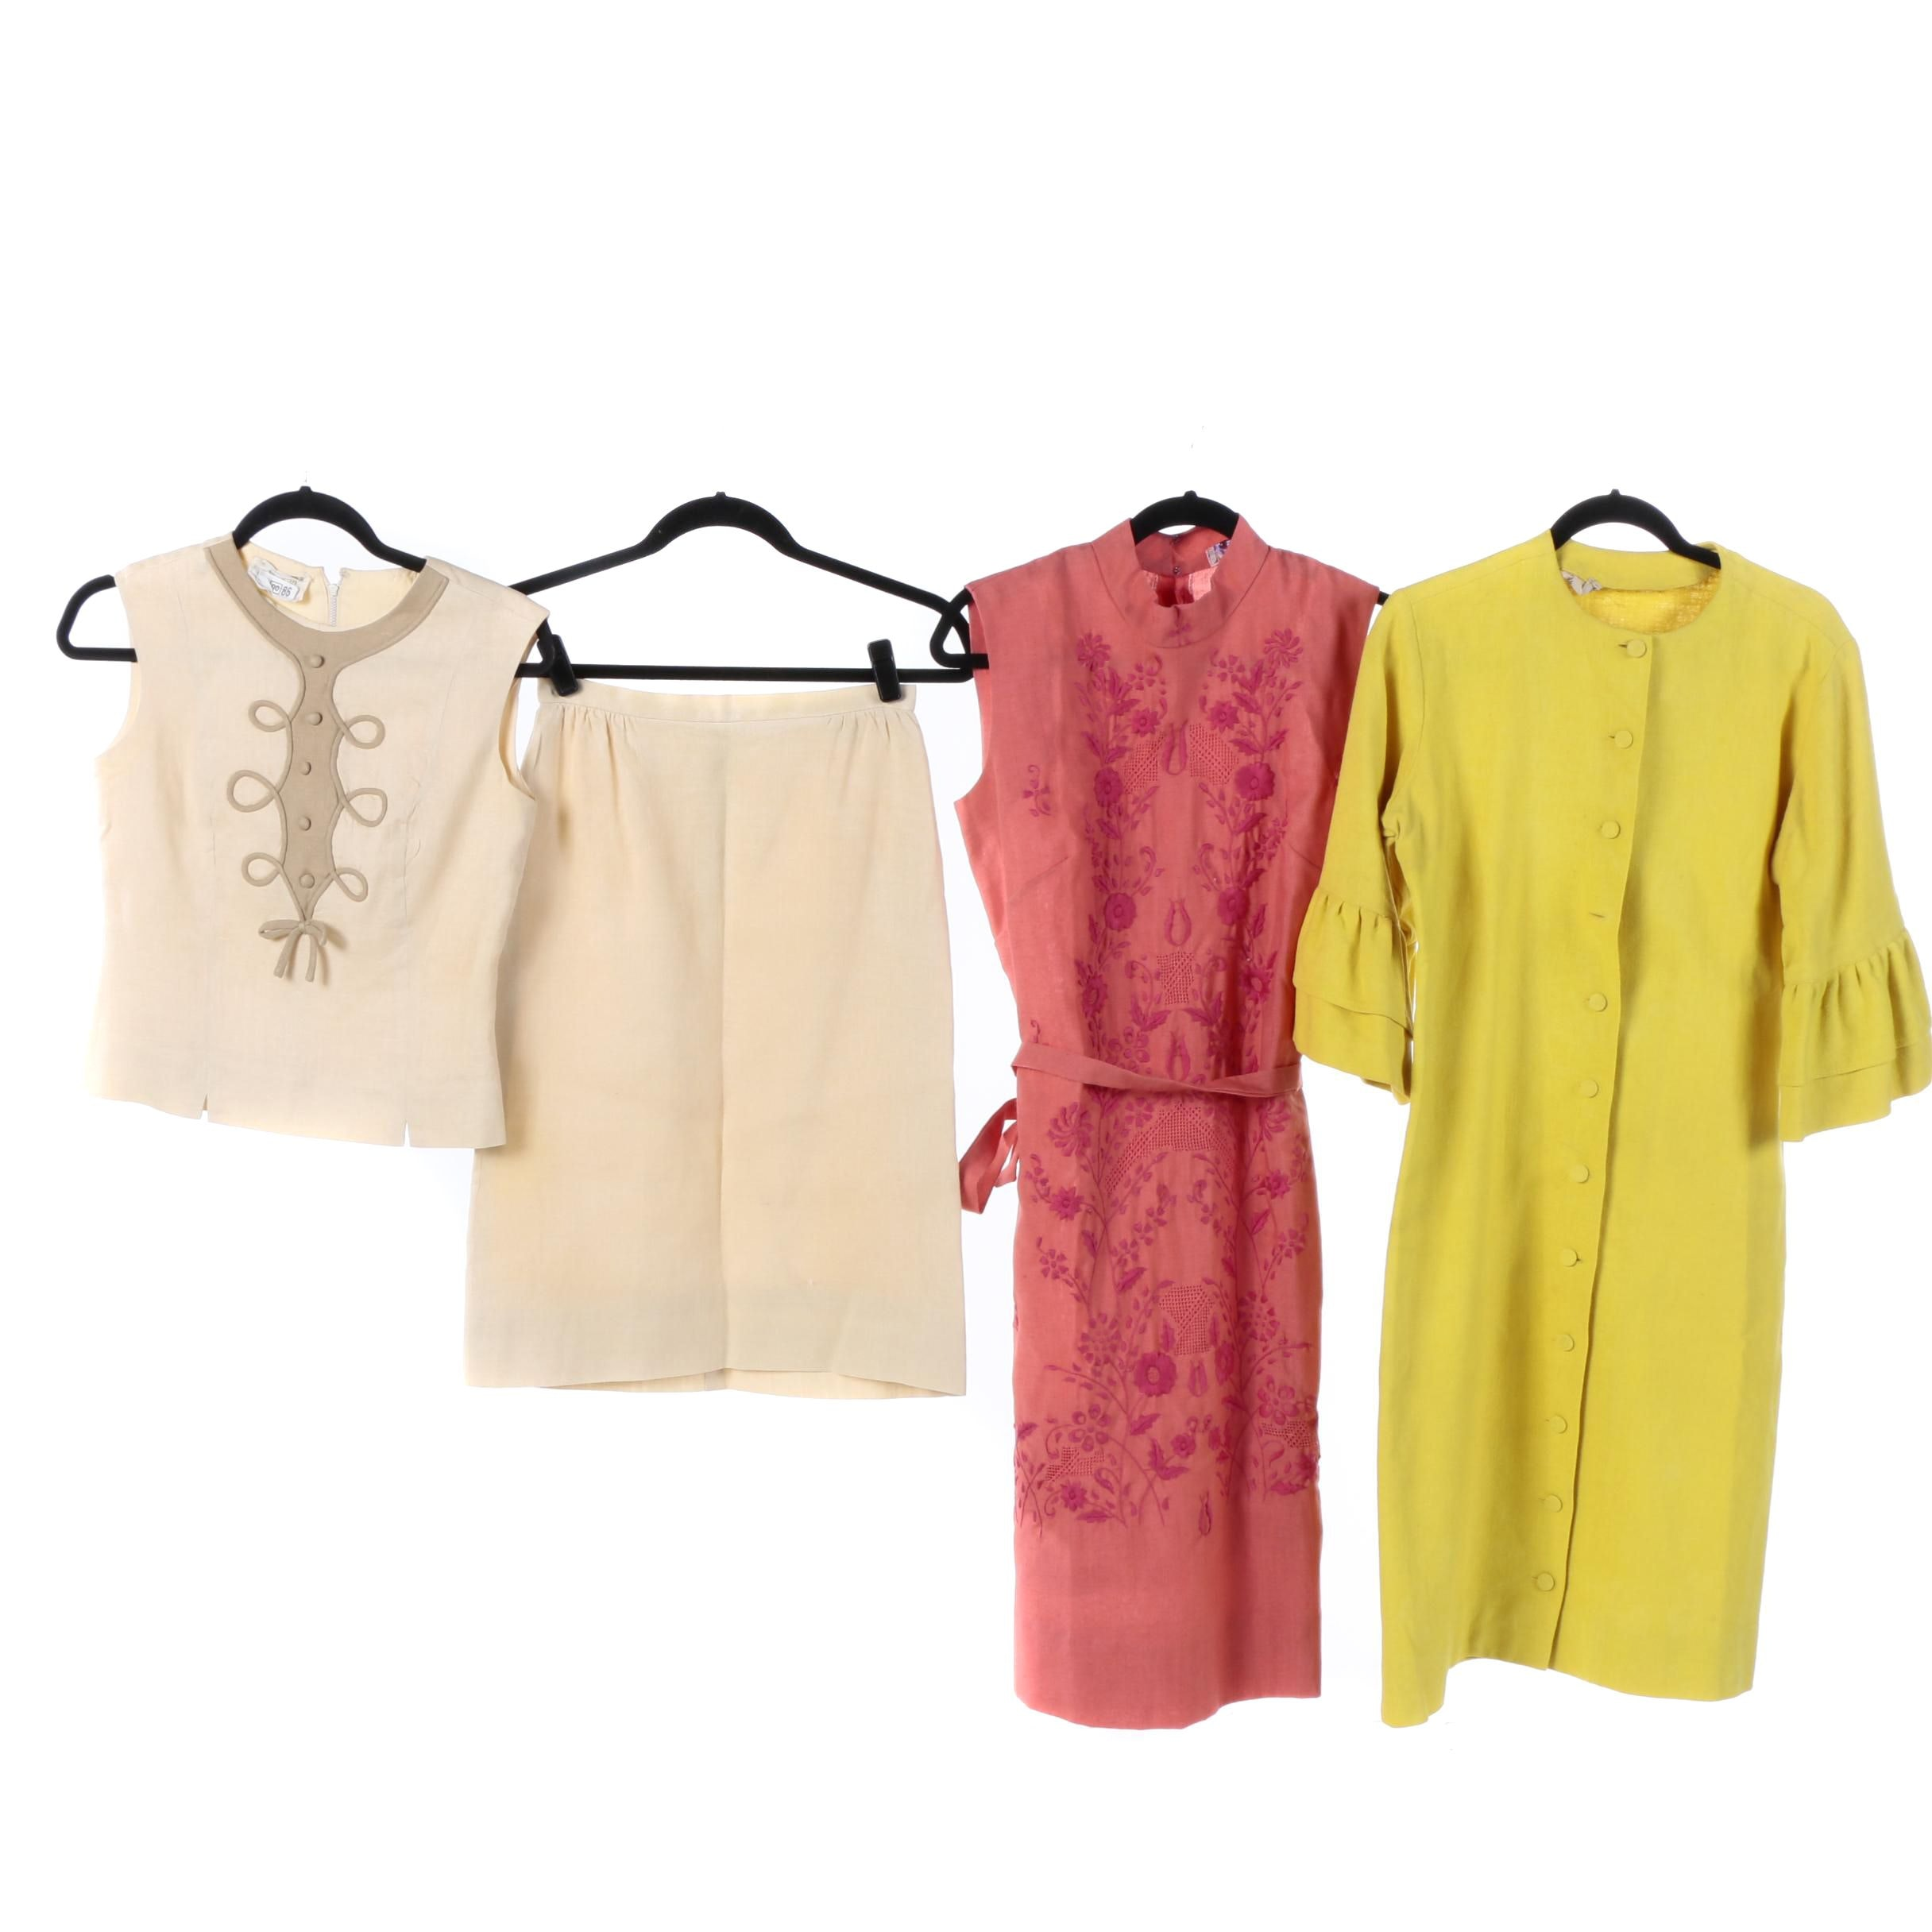 1960s Vintage Linen Dresses Including Embroidery, Susan Thomas